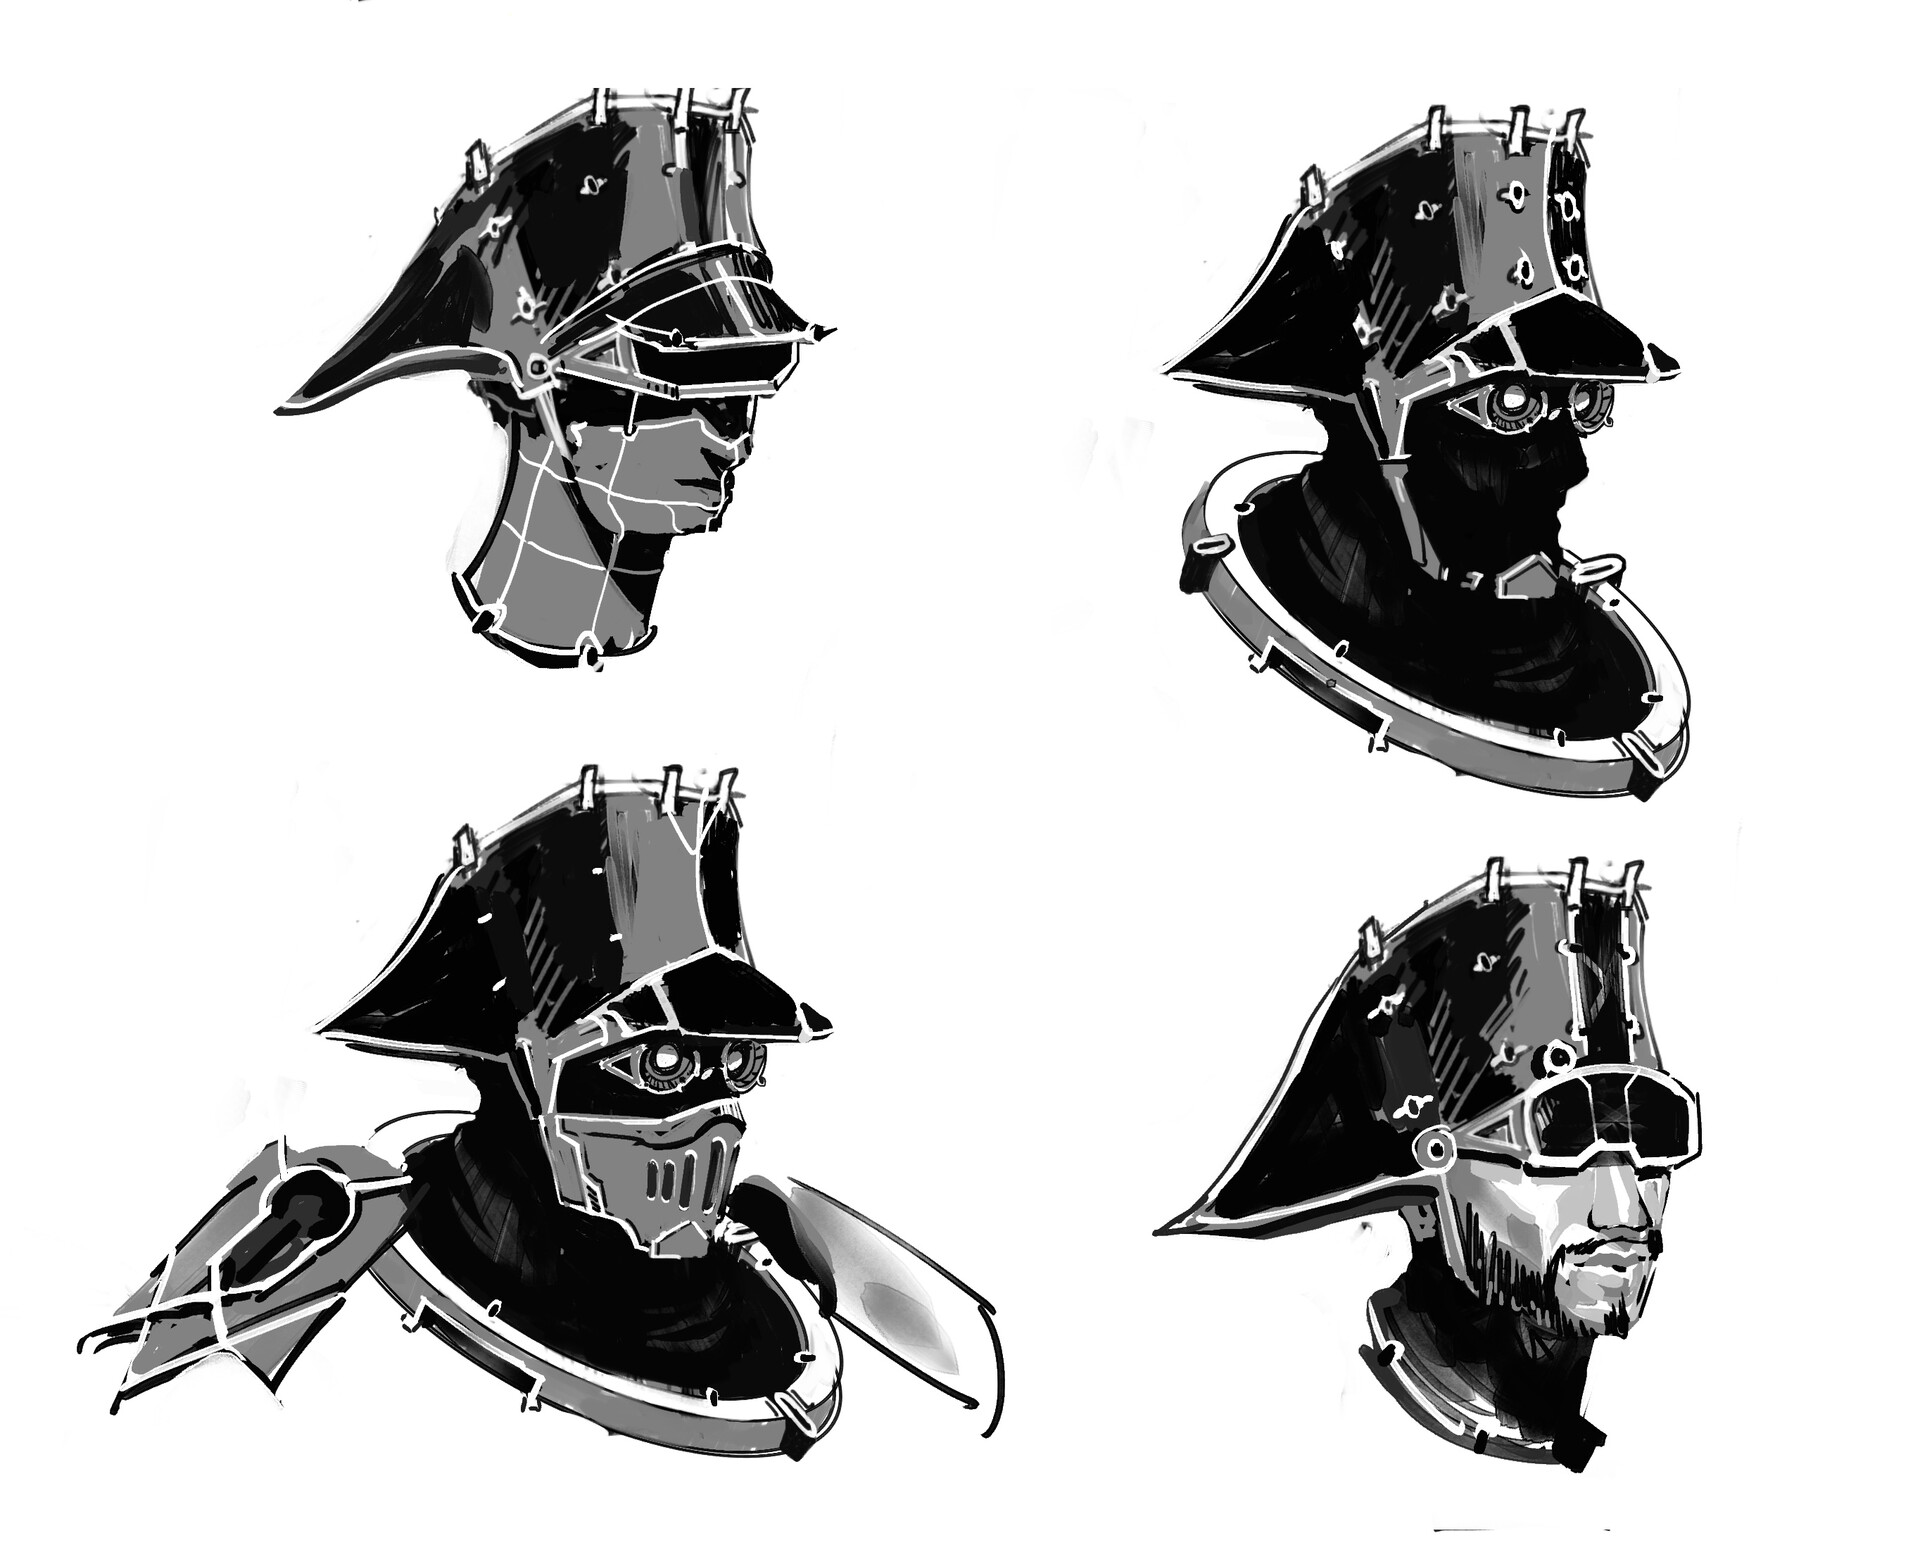 Helmet variations. Having them with helmets made sense for a tactical team, but also saved a bunch of money because faces are hard to do in CG.